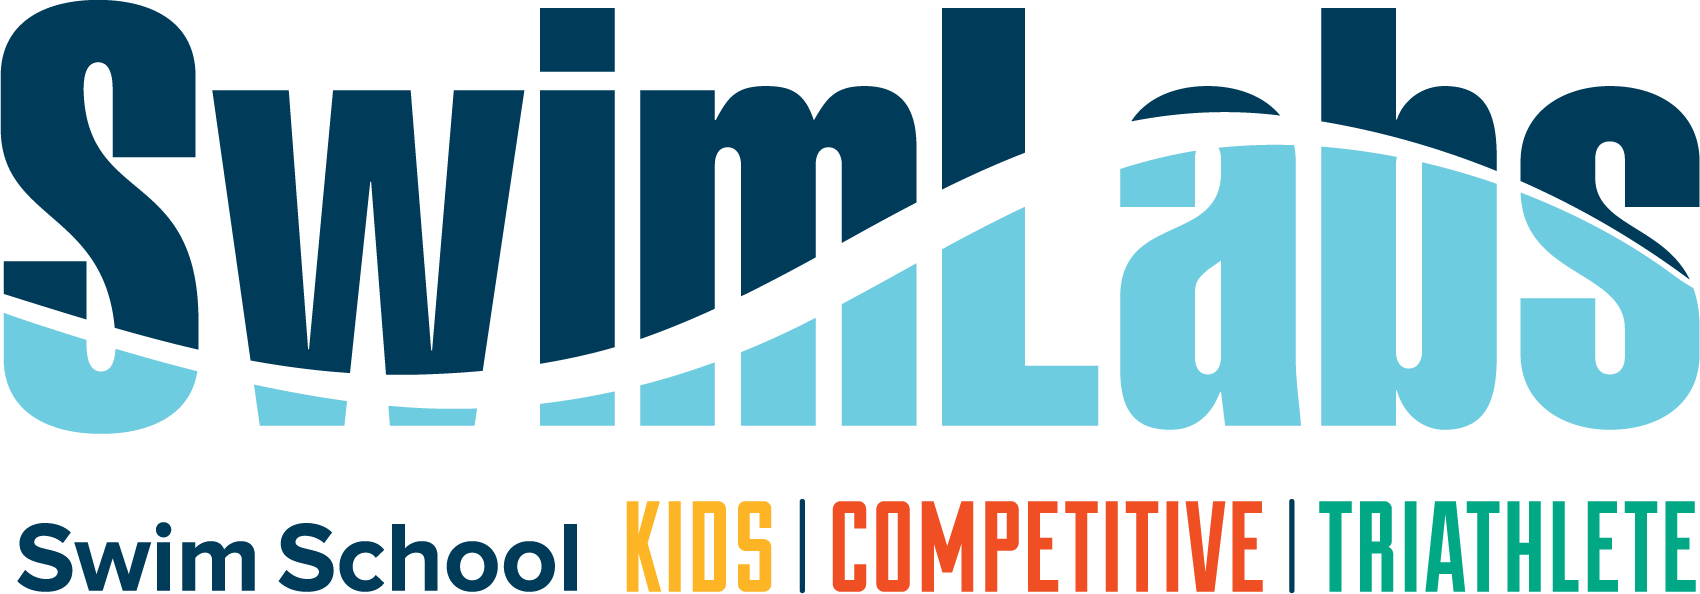 2014SwimLabs-PrimaryLogo_DigitalRGB